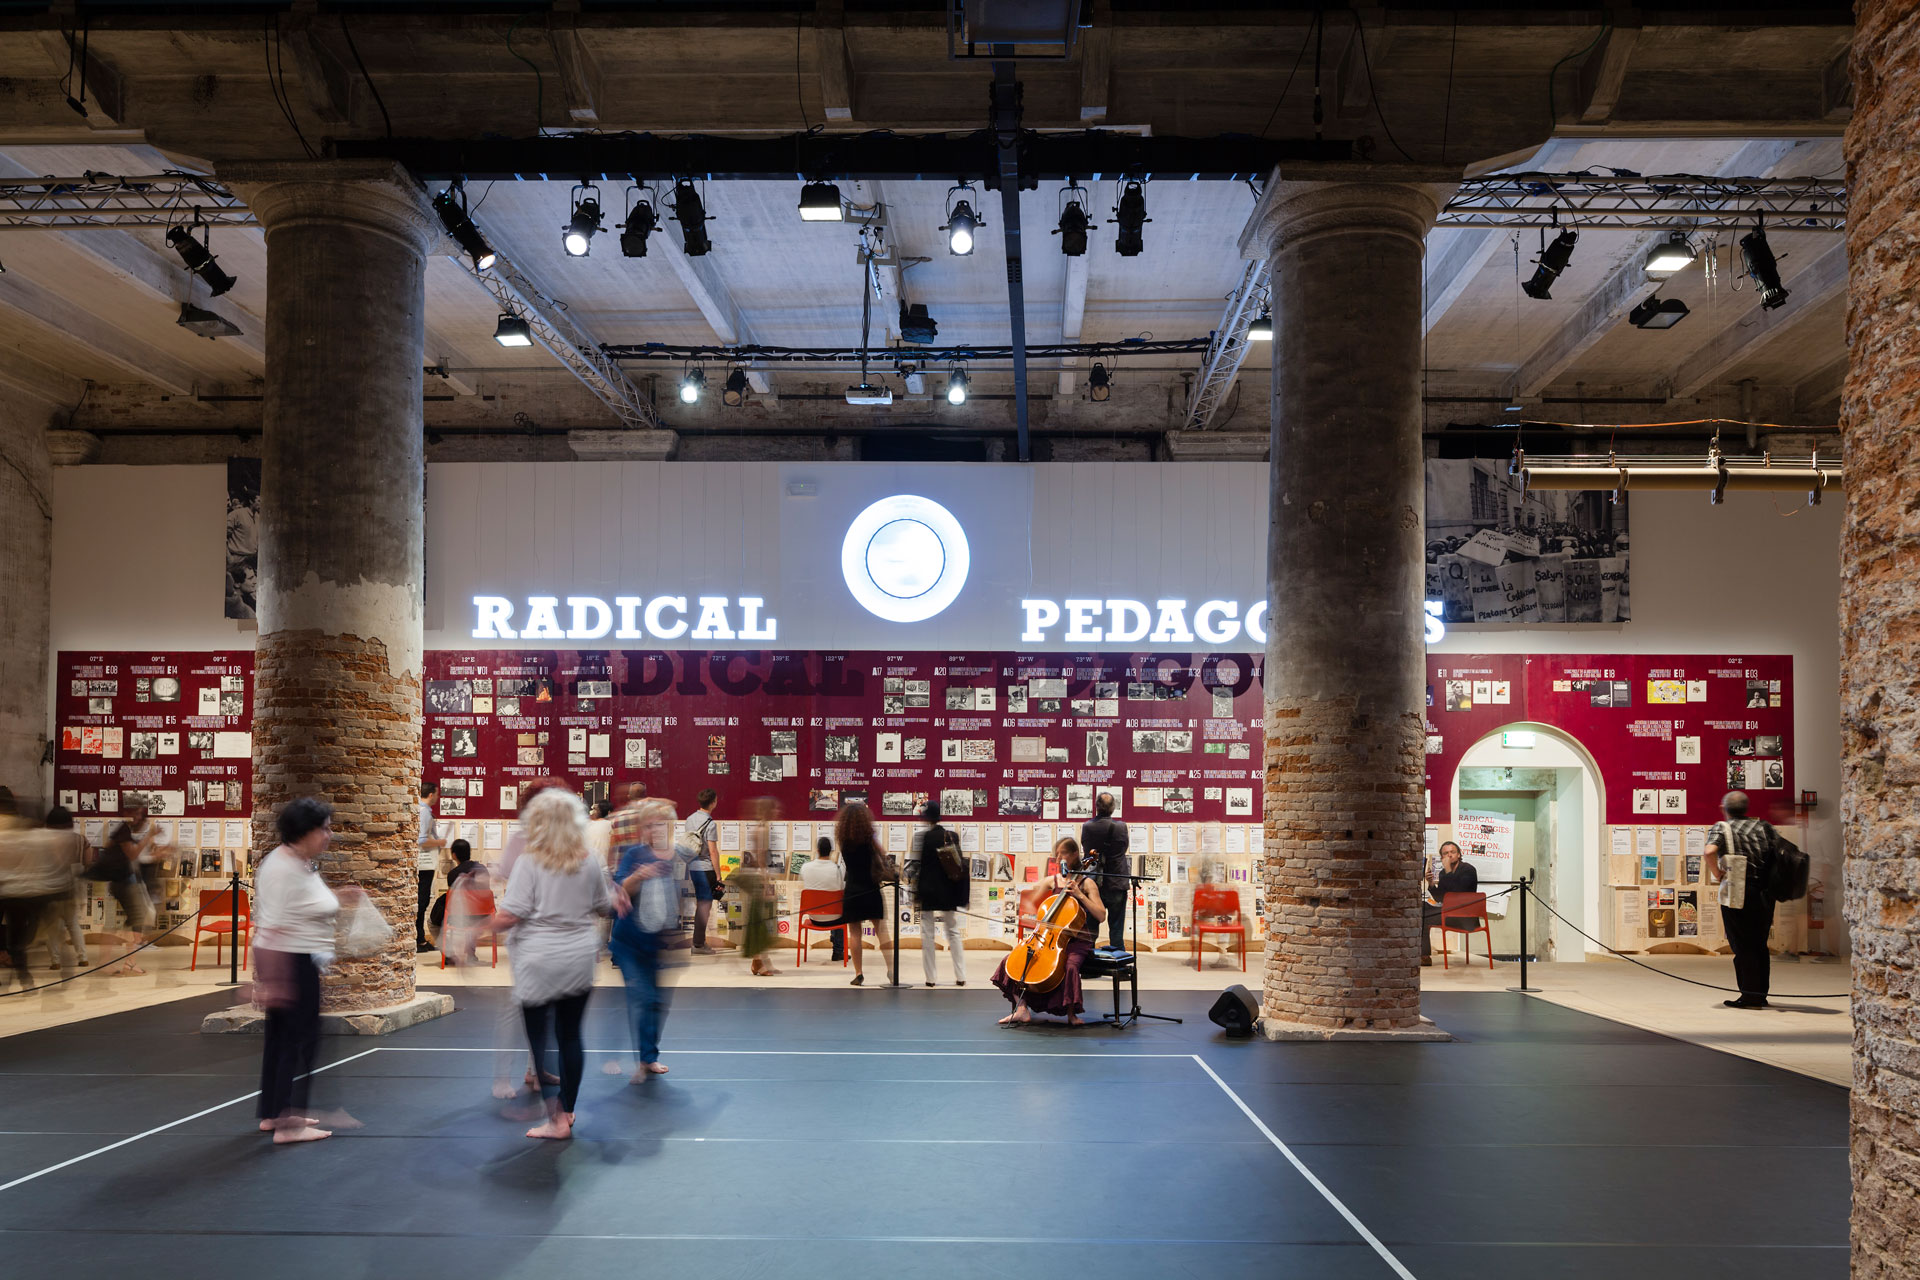 Radical Pedagogies: Action, Reaction, Interaction, 14th International Architecture Exhibition of the Venice Biennale: Fundamentals, Venice, 2014. Photo by Bartosz Stawiarski